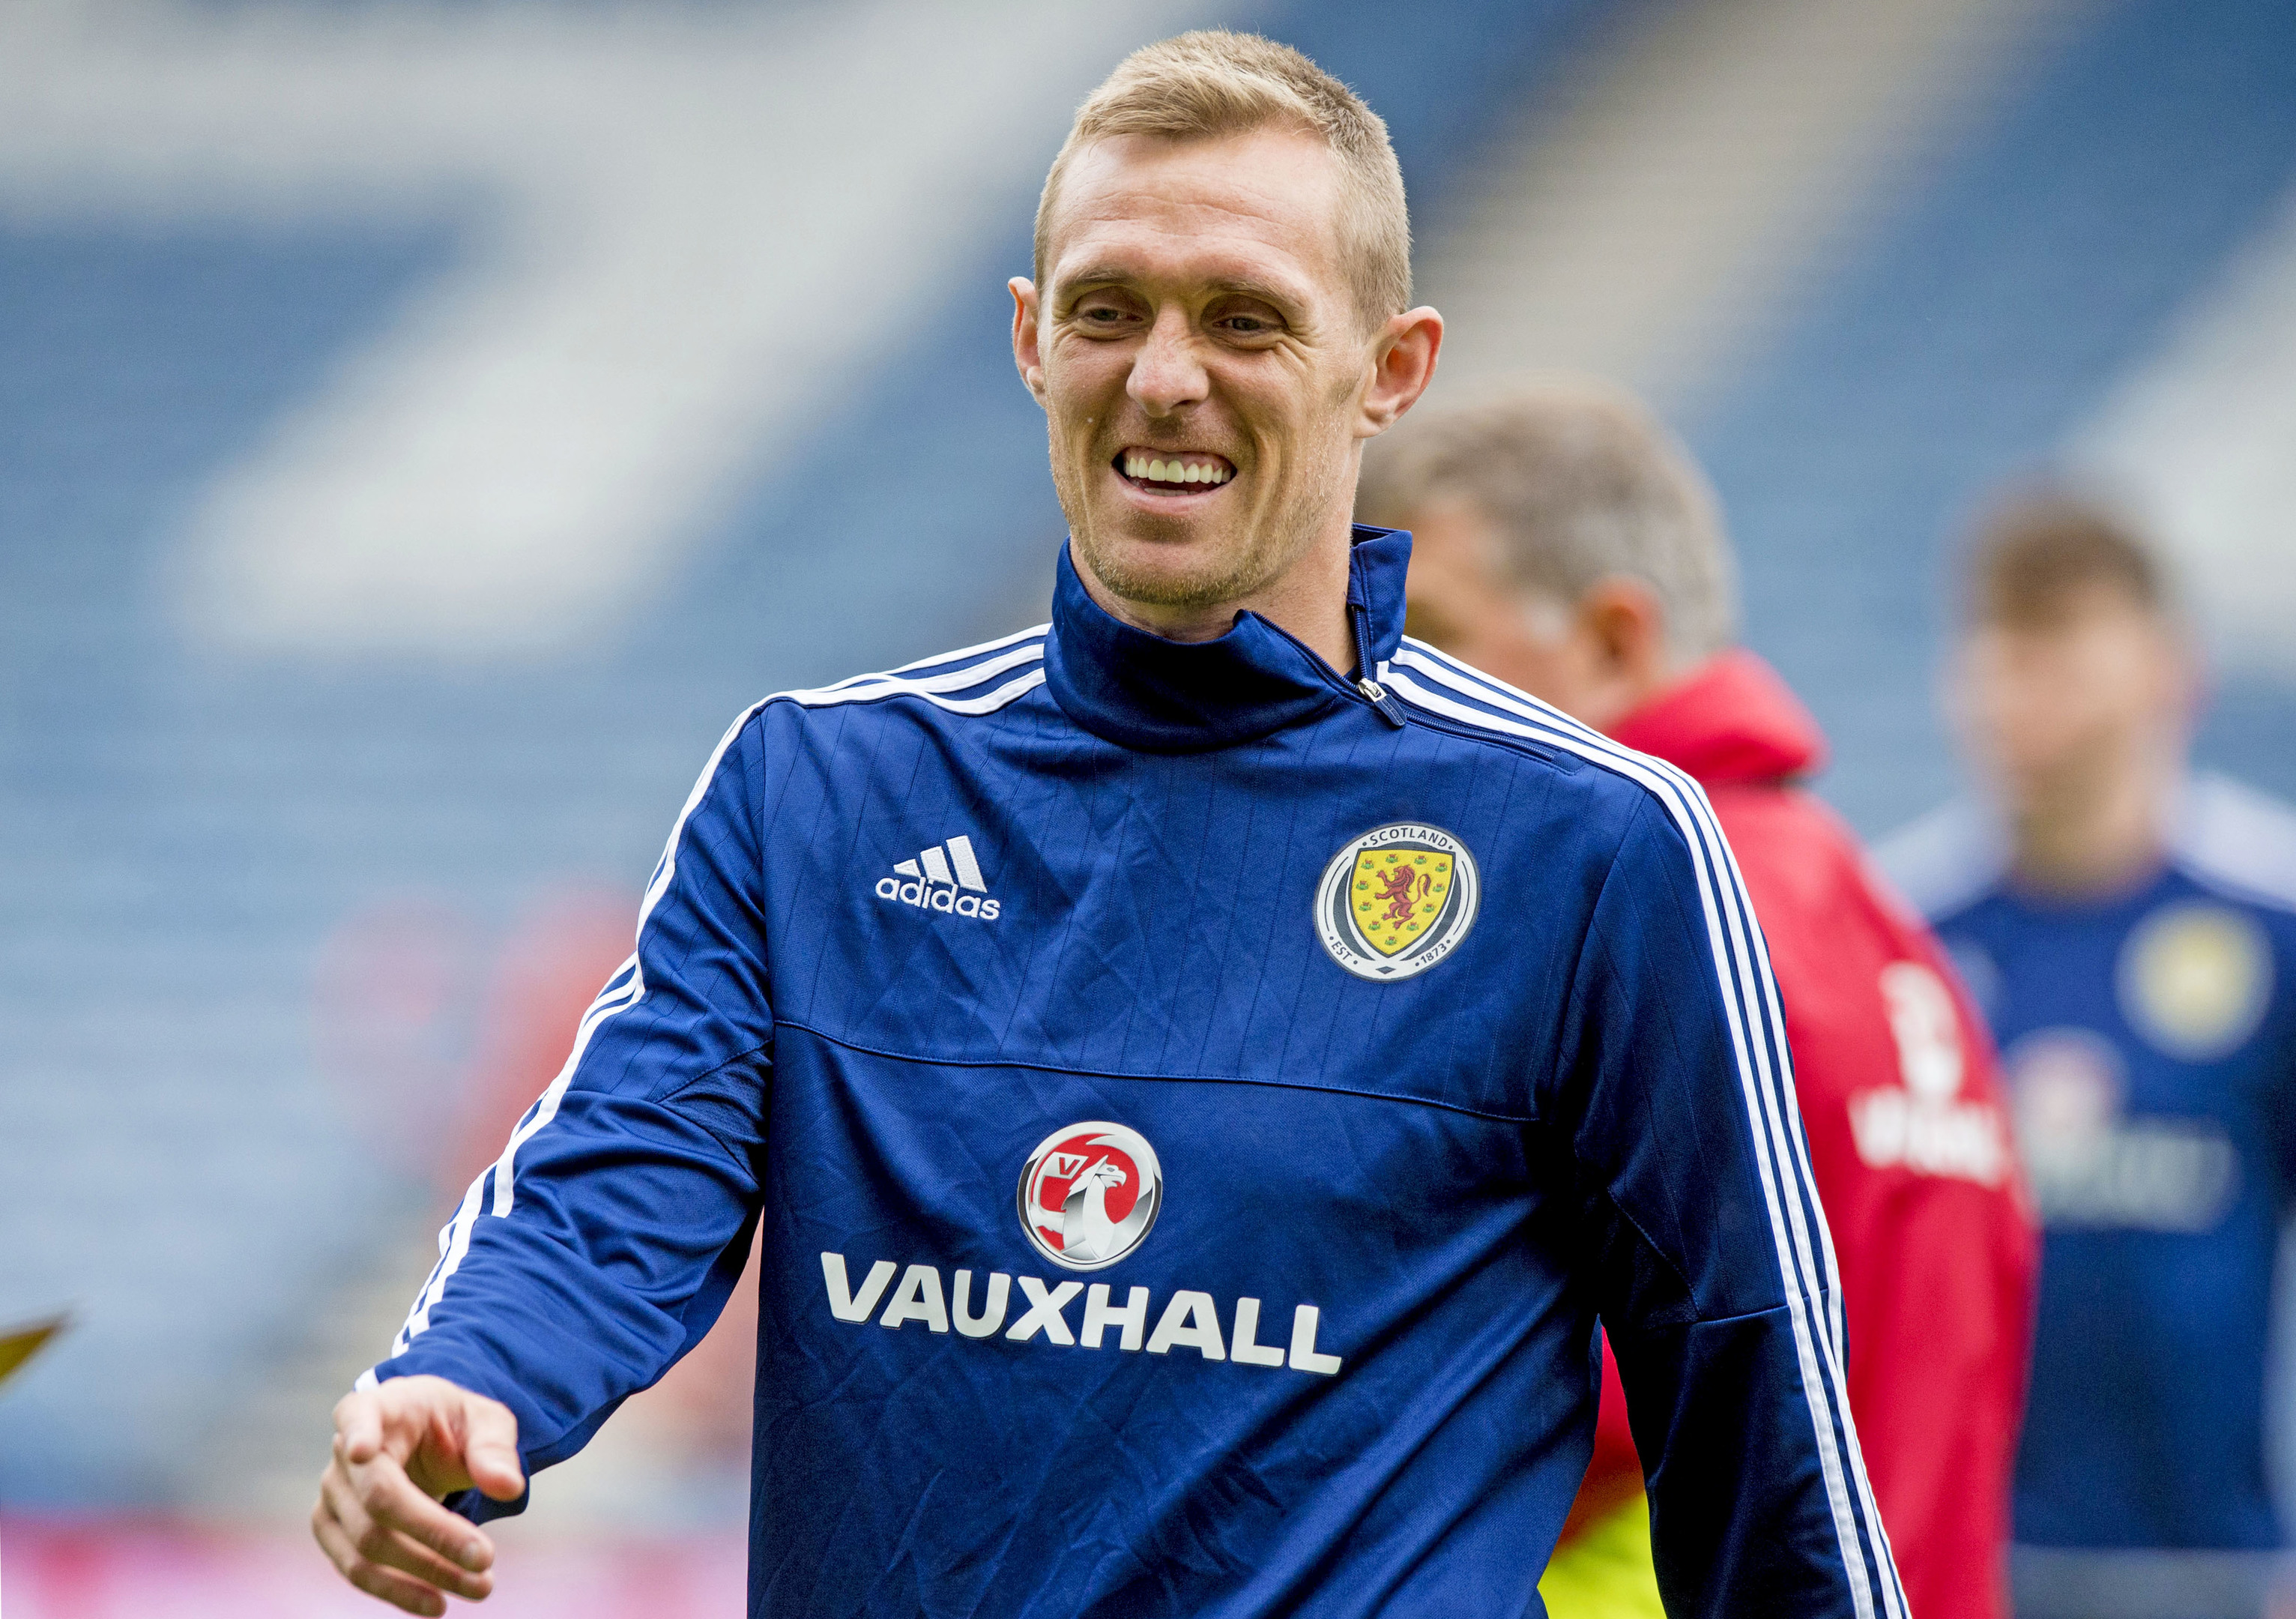 Scotland captain Darren Fletcher trains at Hampden before the Lithuania match.